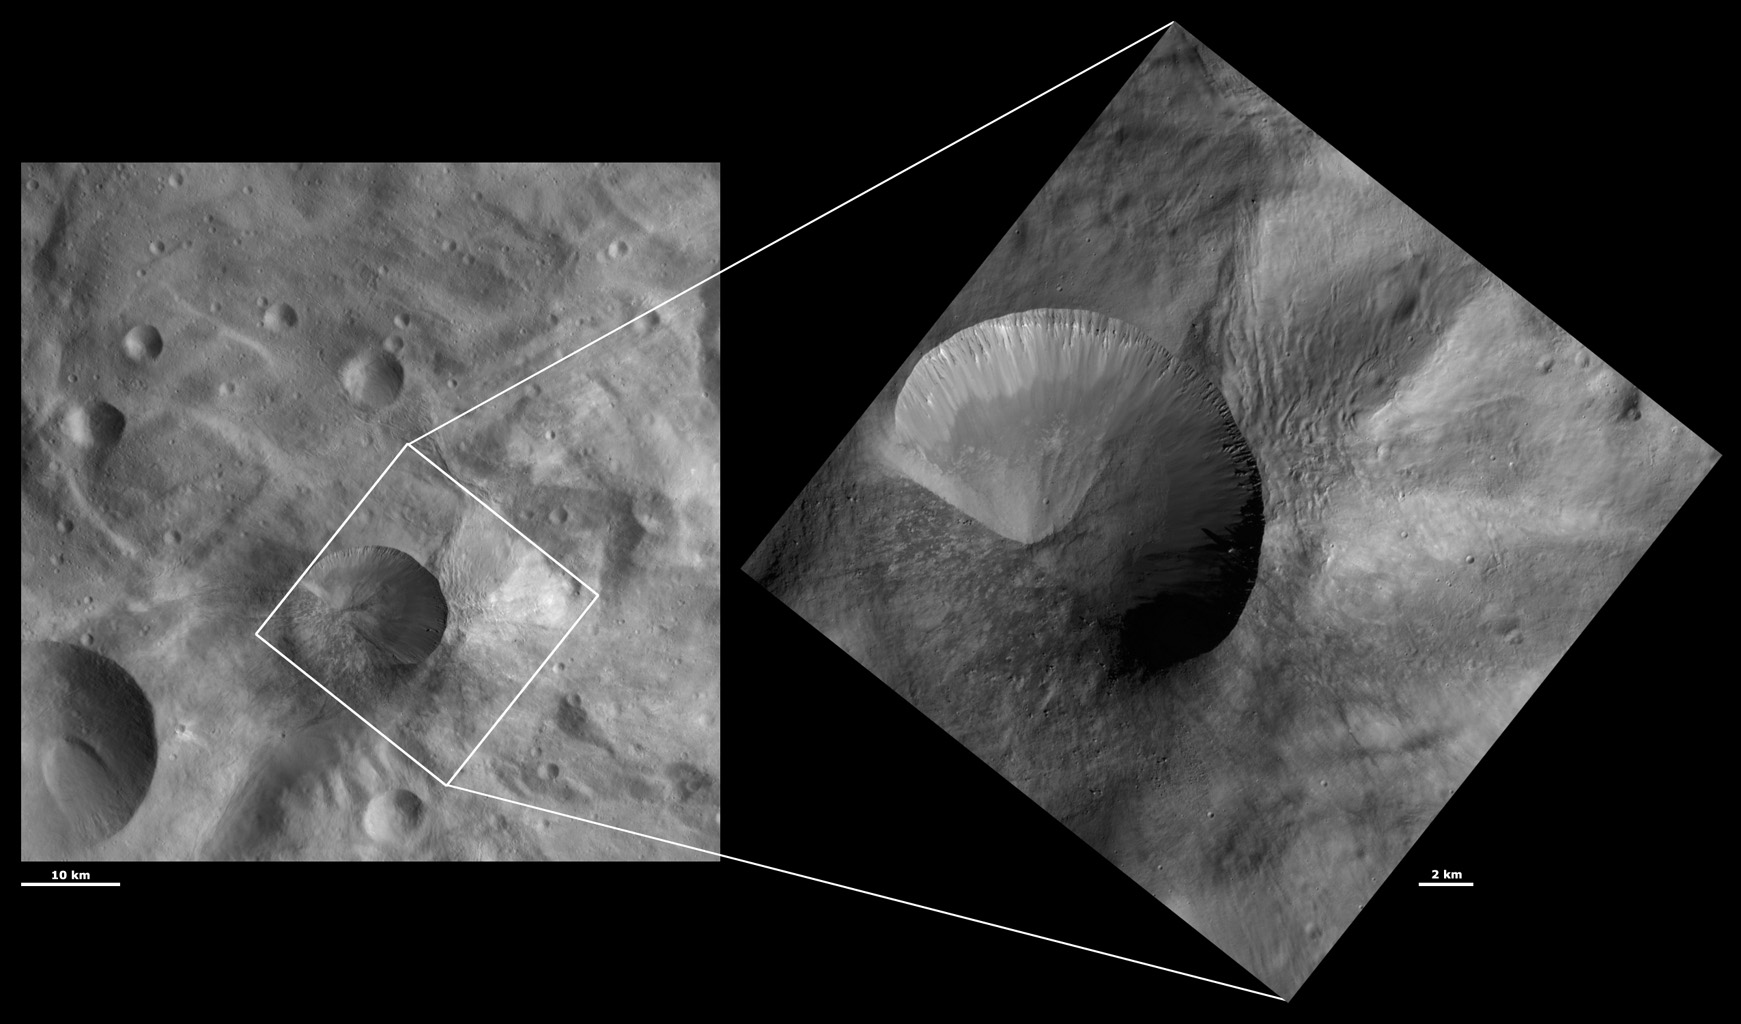 HAMO and LAMO Images of Antonia Crater